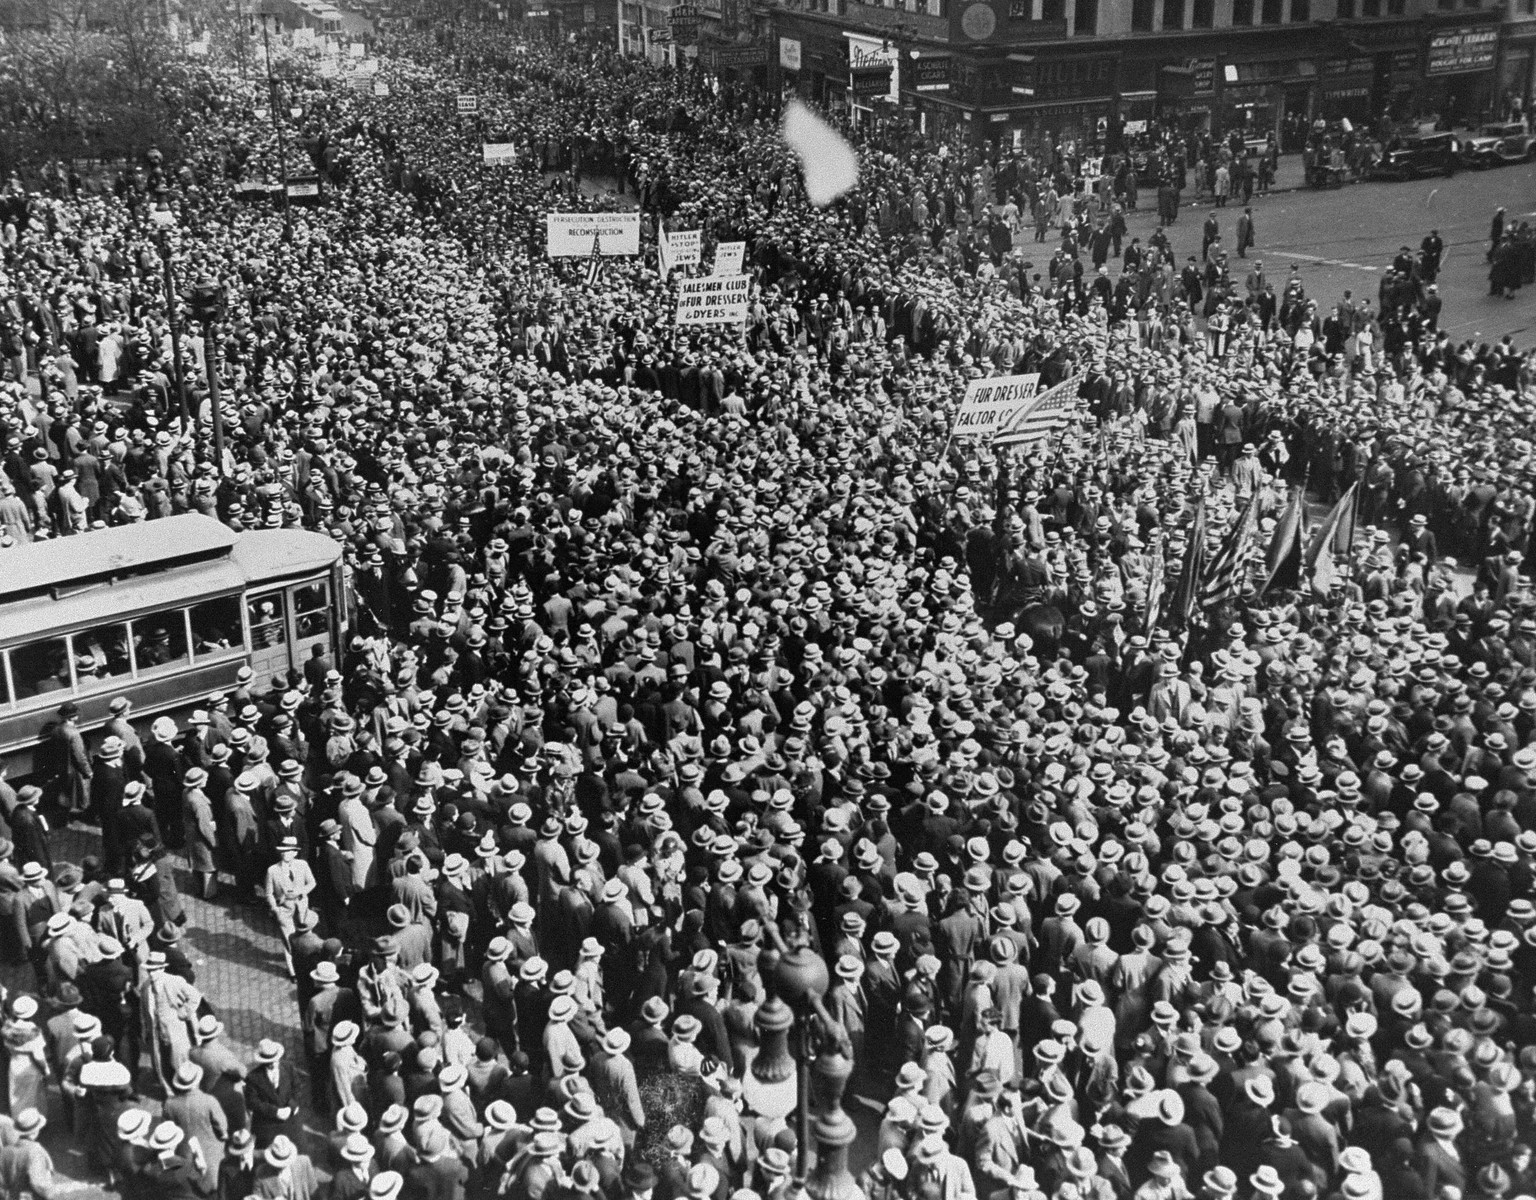 More than a hundred thousand demonstrators gather in front of Madison Square Garden to take part in an anti-Nazi protest march through lower Manhattan.